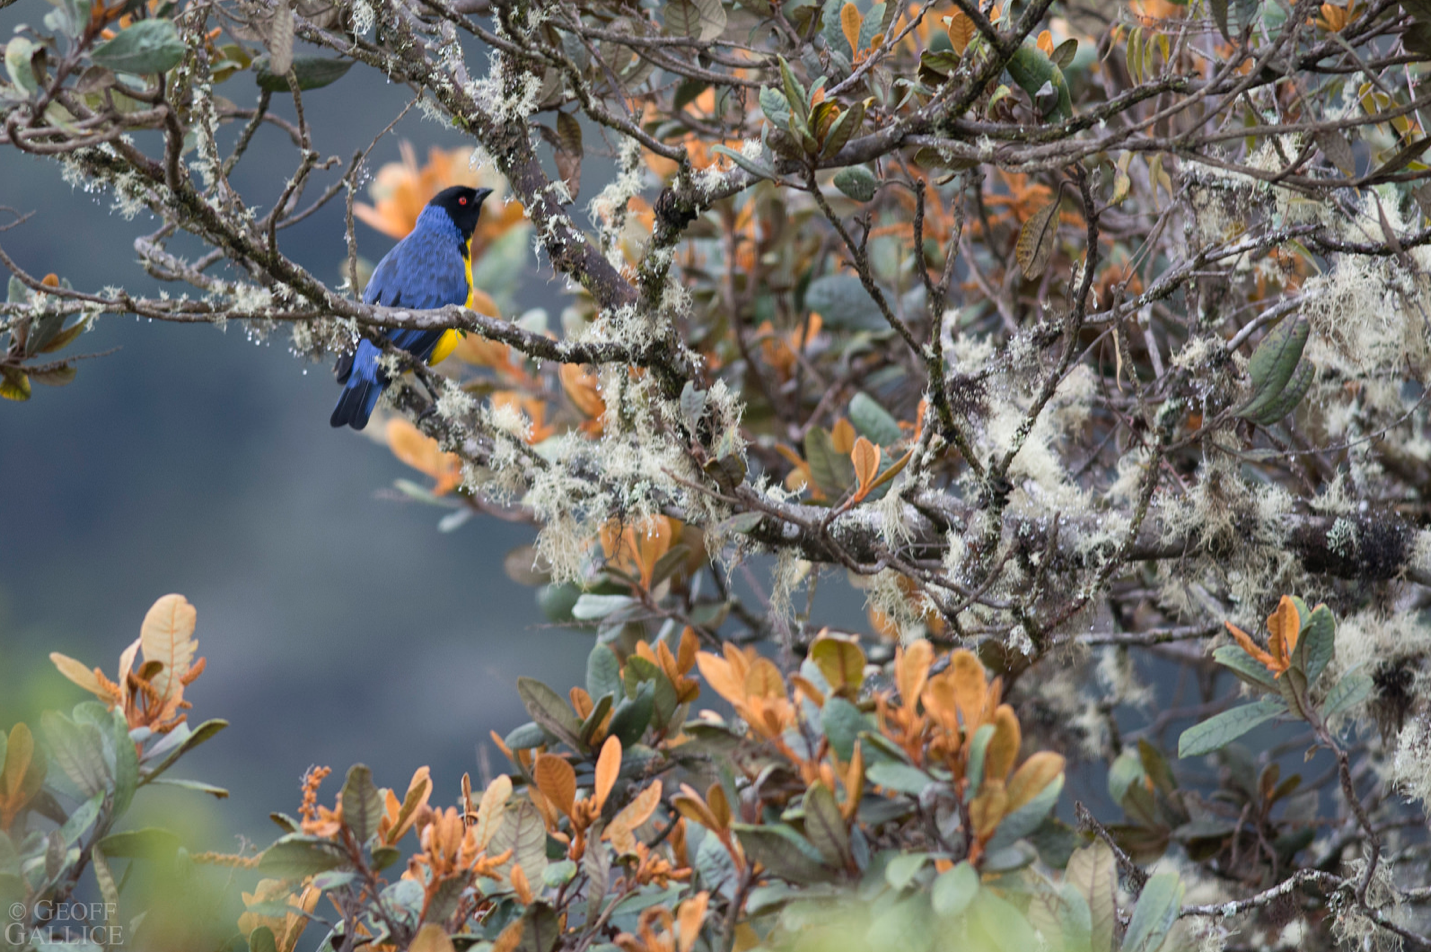 Hooded Mountain-Tanager – Photo: Geoff Gallice